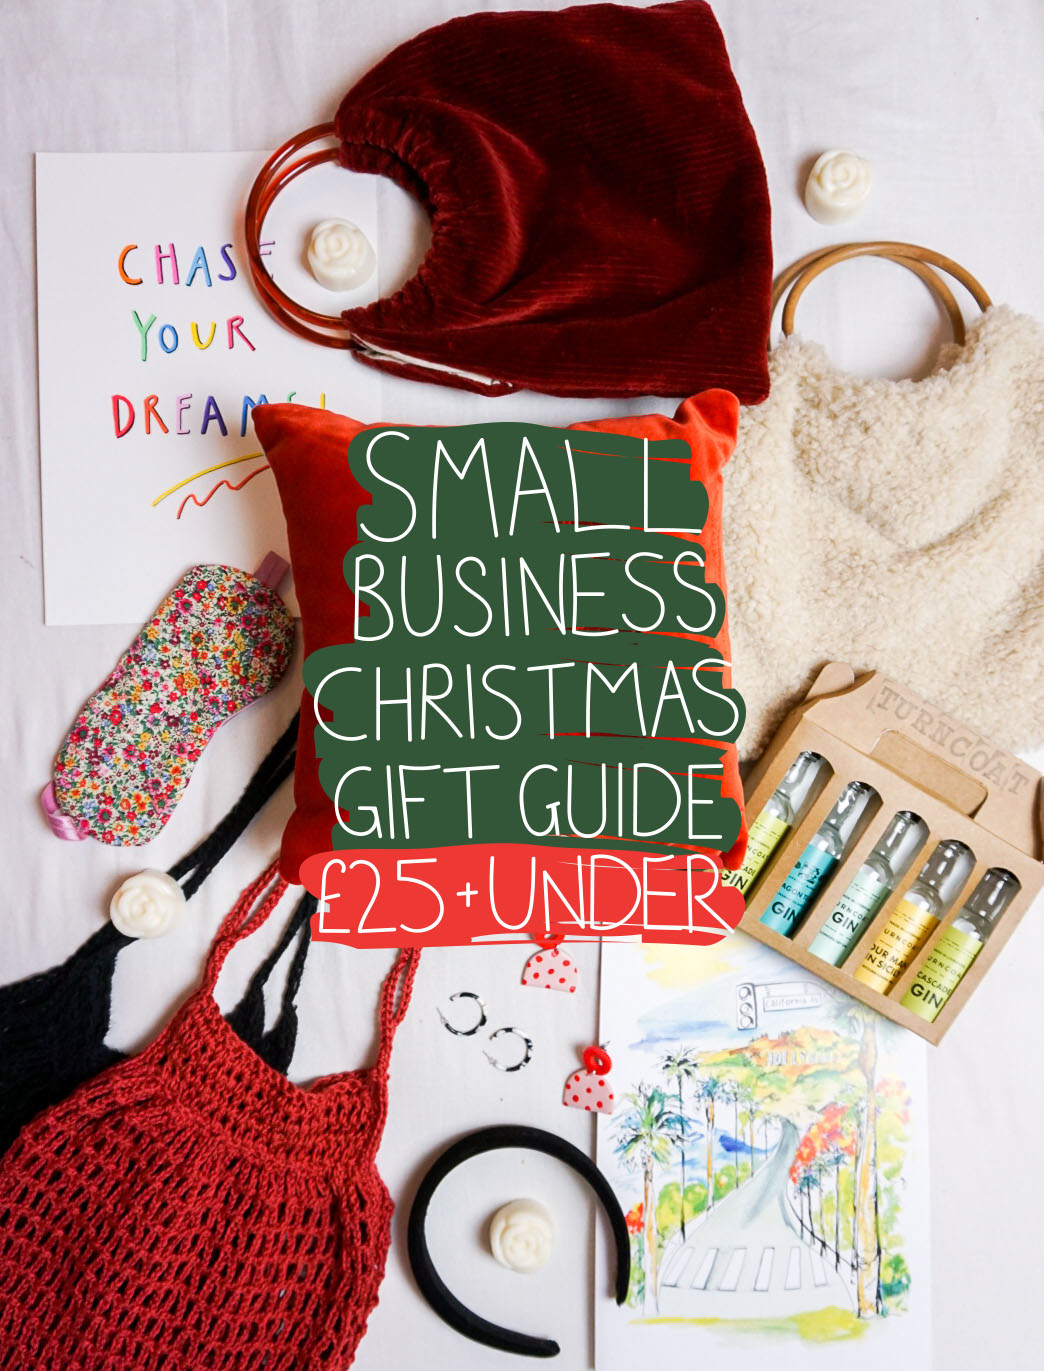 SMALL BUSINESS CHRISTMAS GIFT GUIDE £25 AND UNDER flat lay